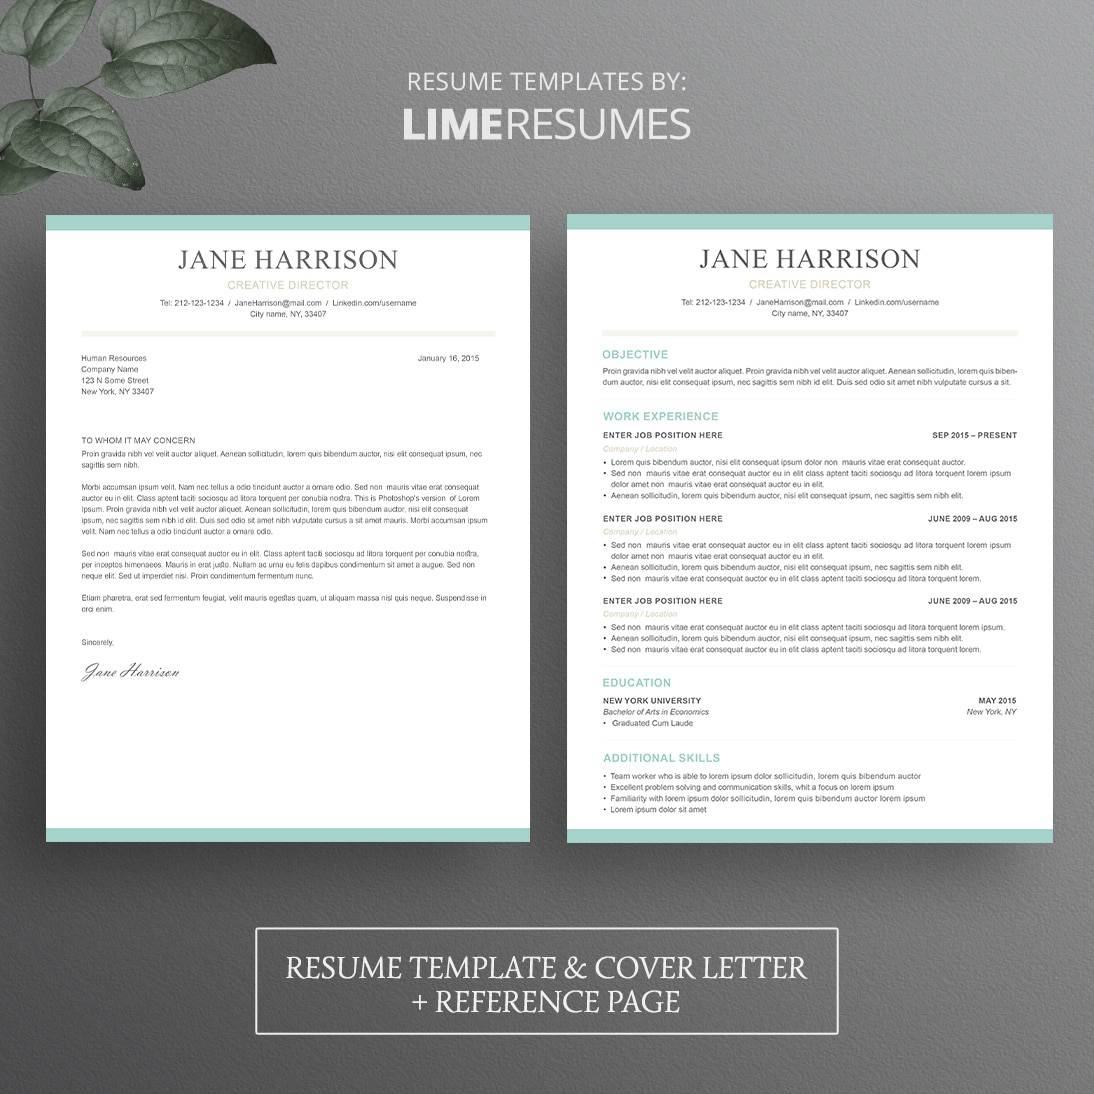 Resume Format Microsoft Office Word Cover Letter Sample Sample Resume  Microsoft Office Resume Format Teacher Objective  Microsoft Office Resume Format